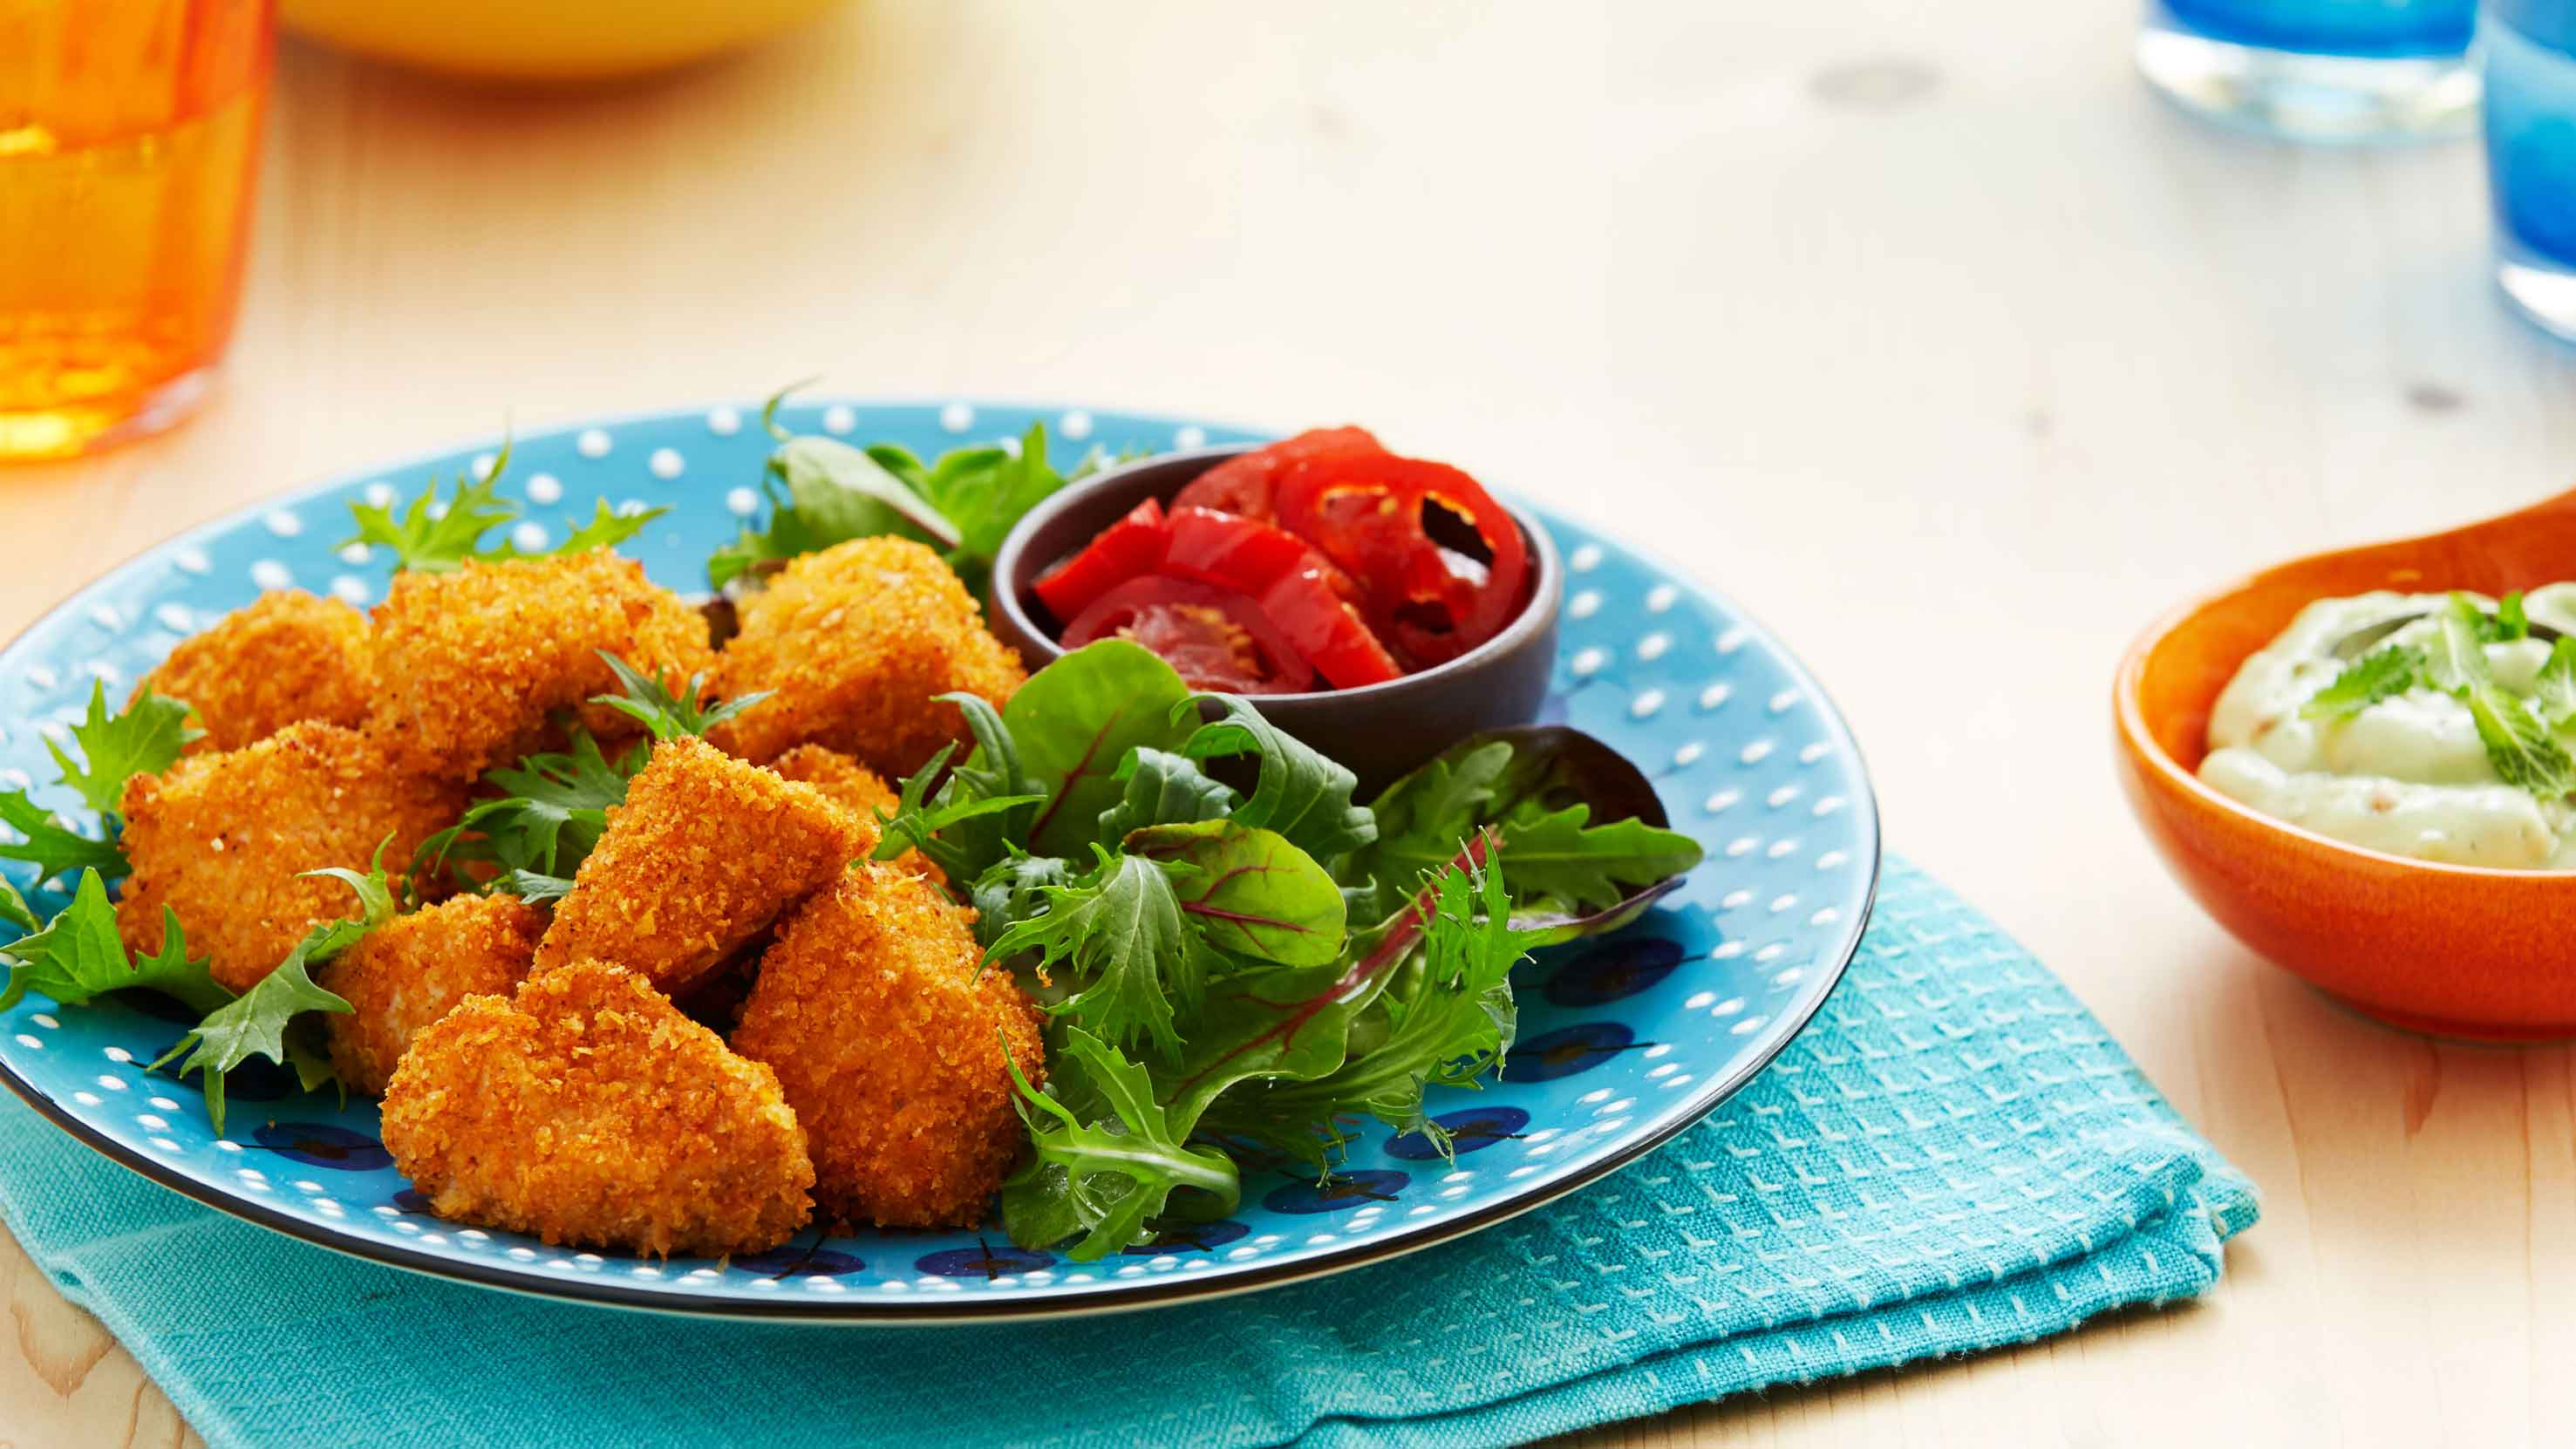 Colombian Crunchy Chicken Bites